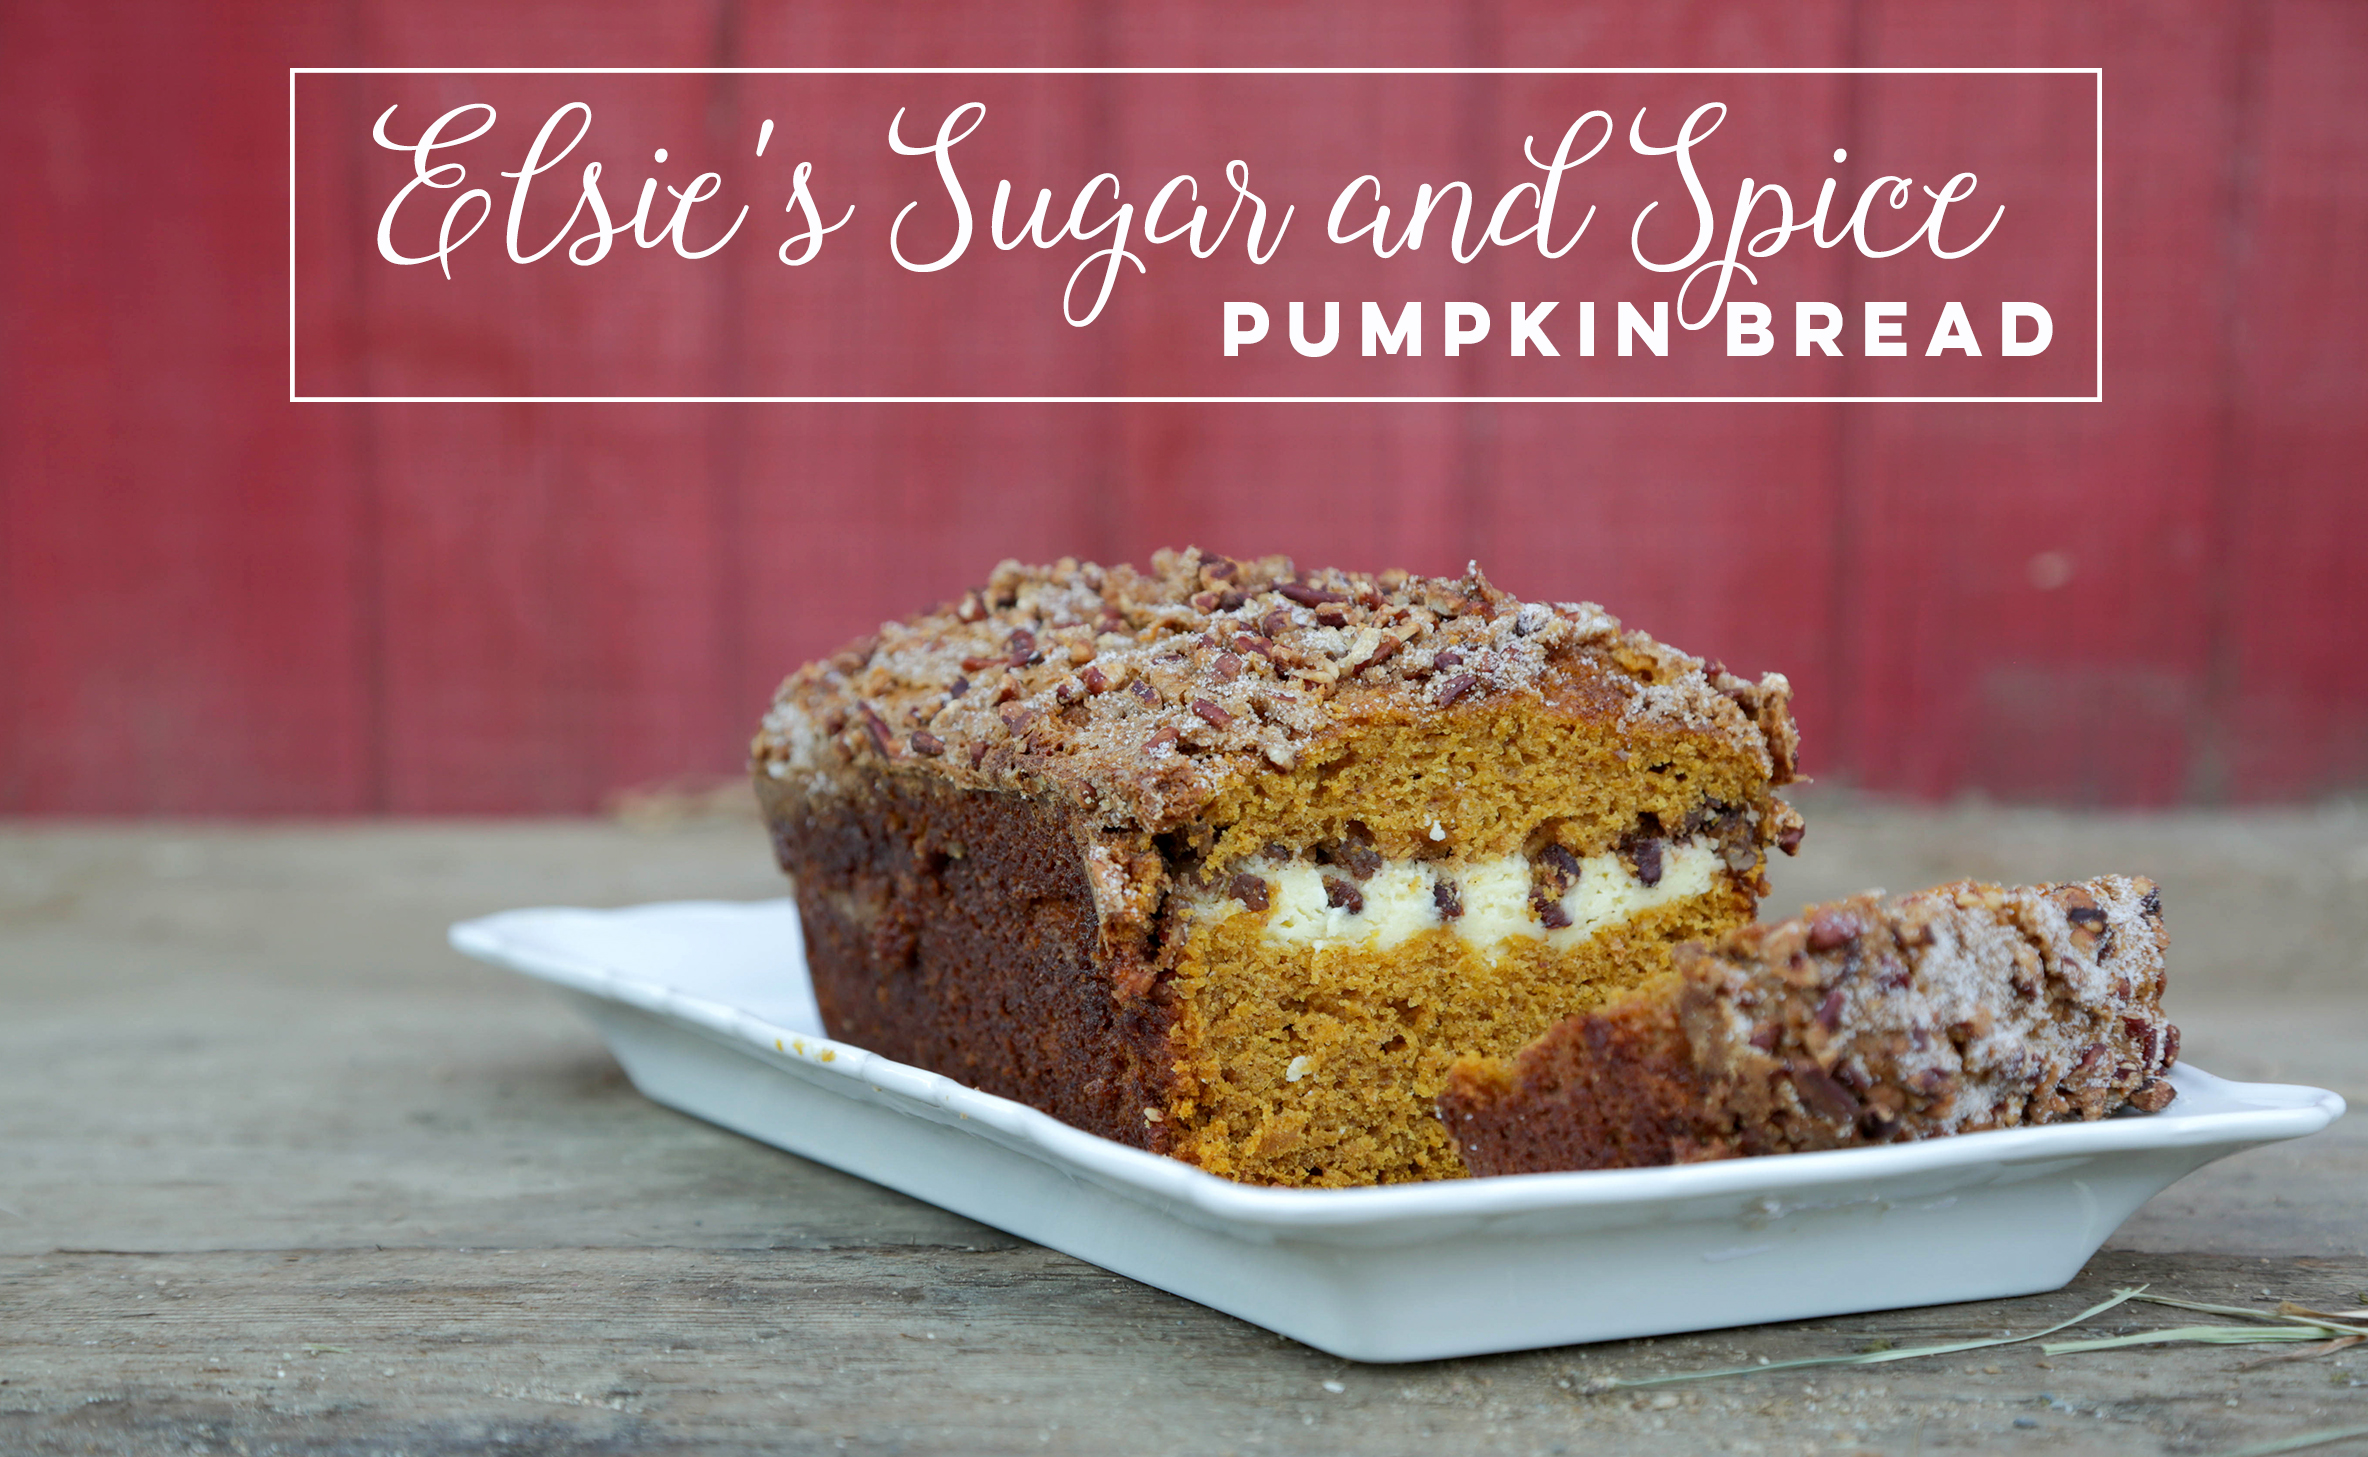 Elsie's Sugar and Spice Pumpkin Bread - Remember Elsie's delicious Sugar and Spice Pumpkin Bread from Marigolds and Murder? We've got the recipe! Click the photo.